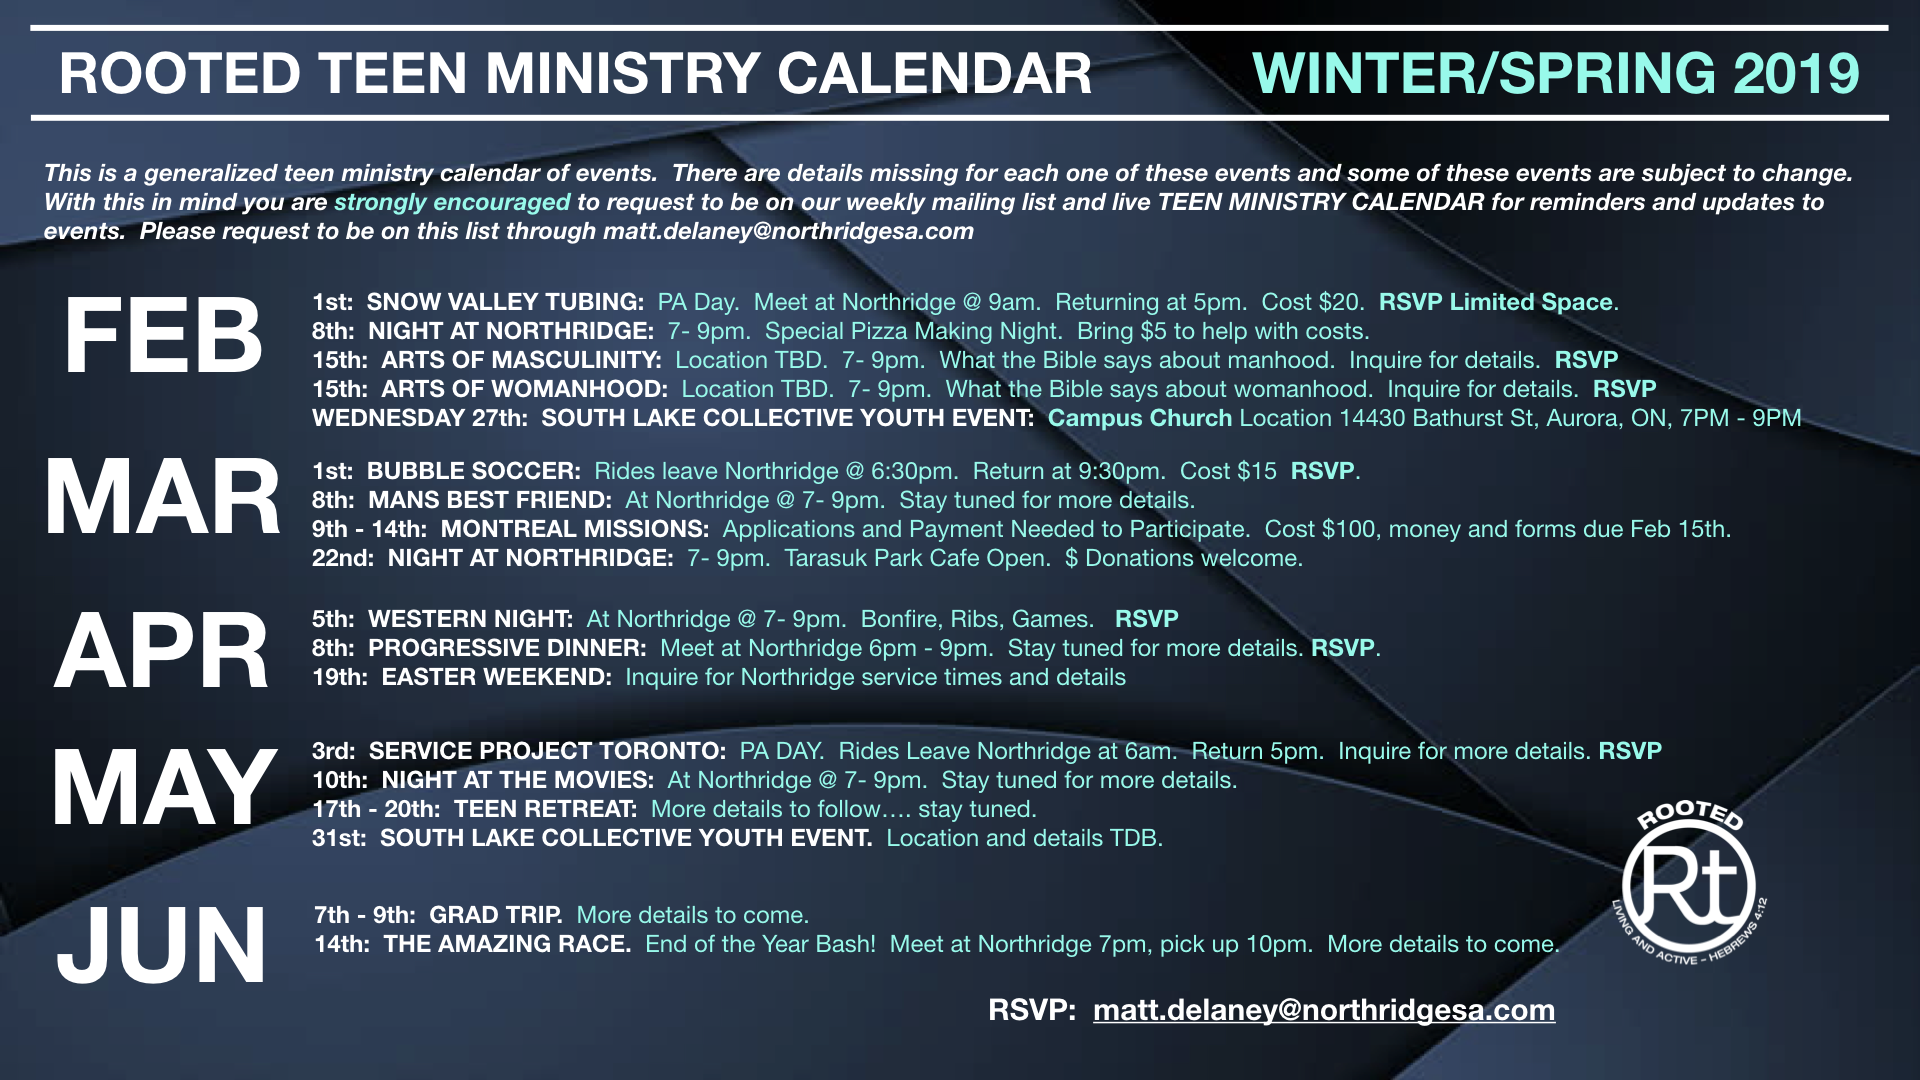 PNG Youth Ministry Calenandars Spring Winter 2019.001.png